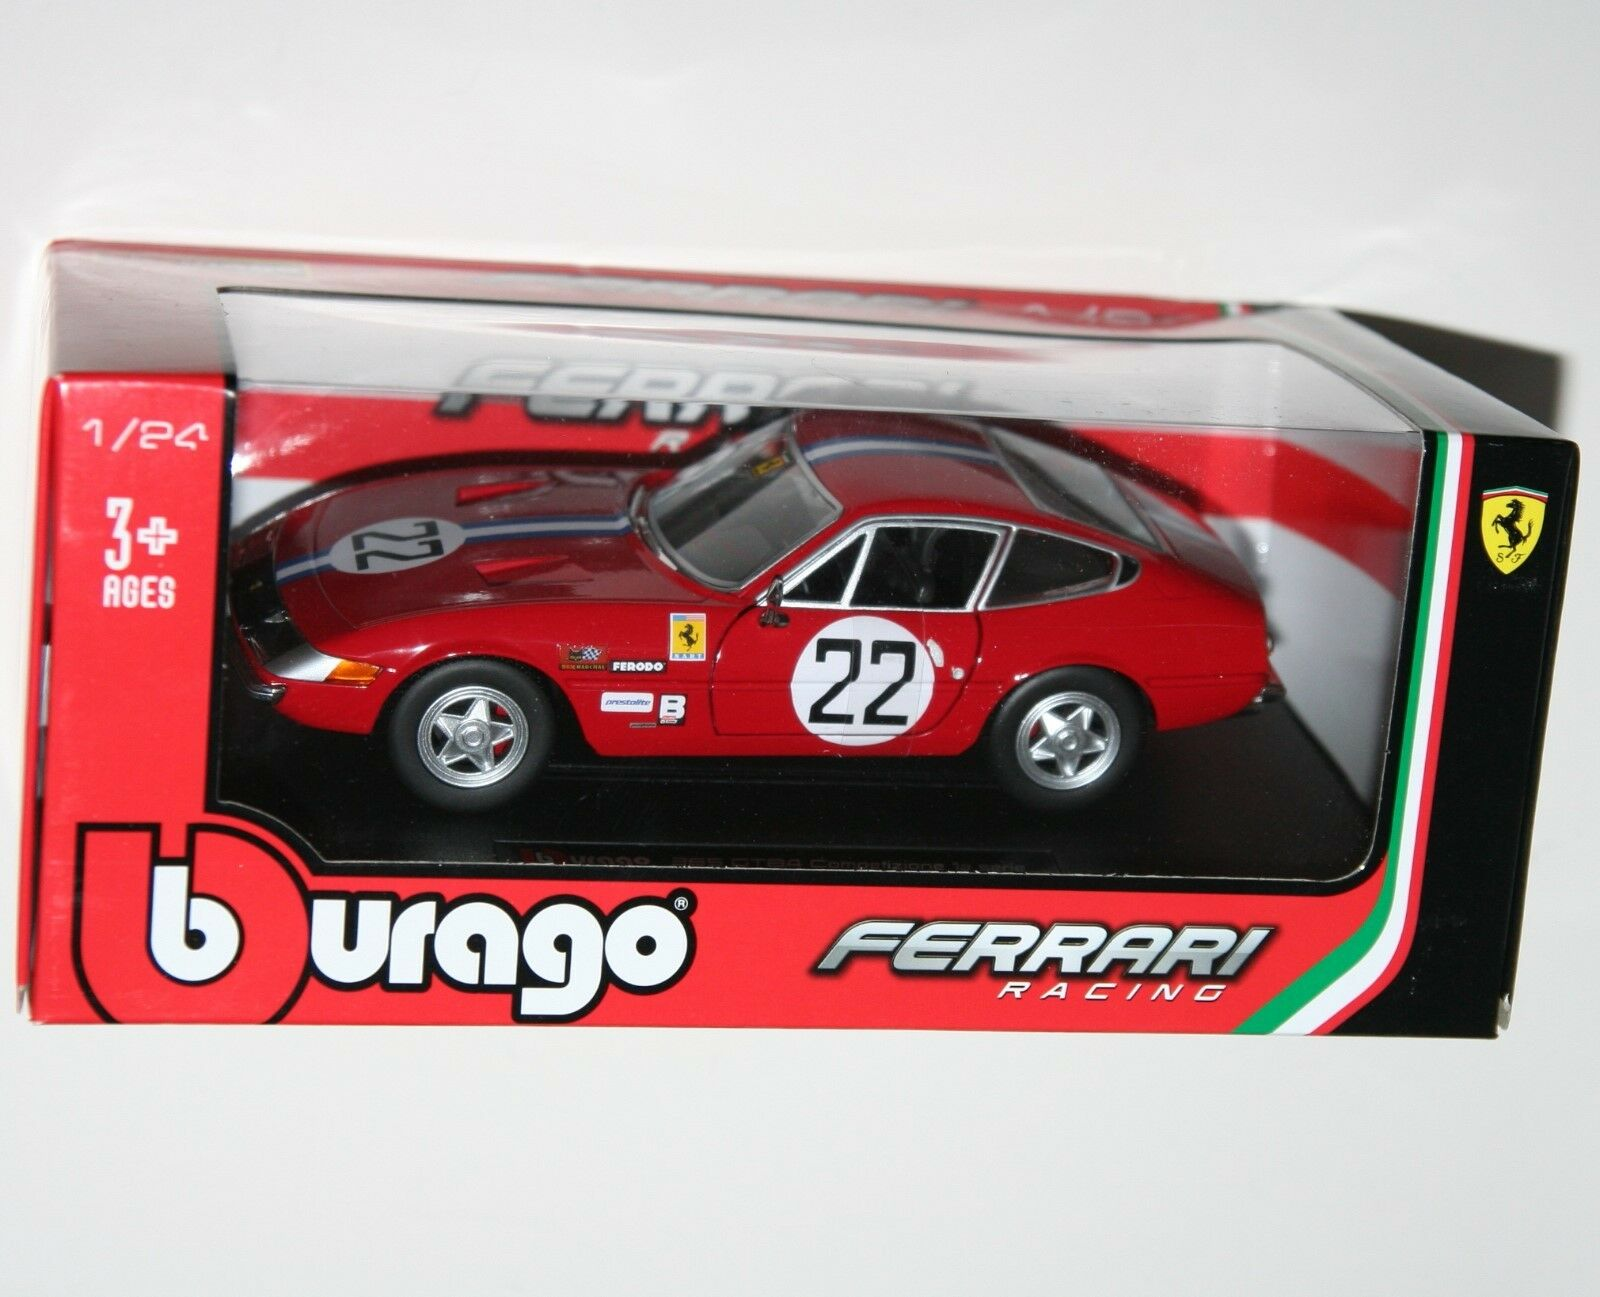 Burago - FERRARI 365 GTB4 (Red) - Die Cast Model - Scale 1 24